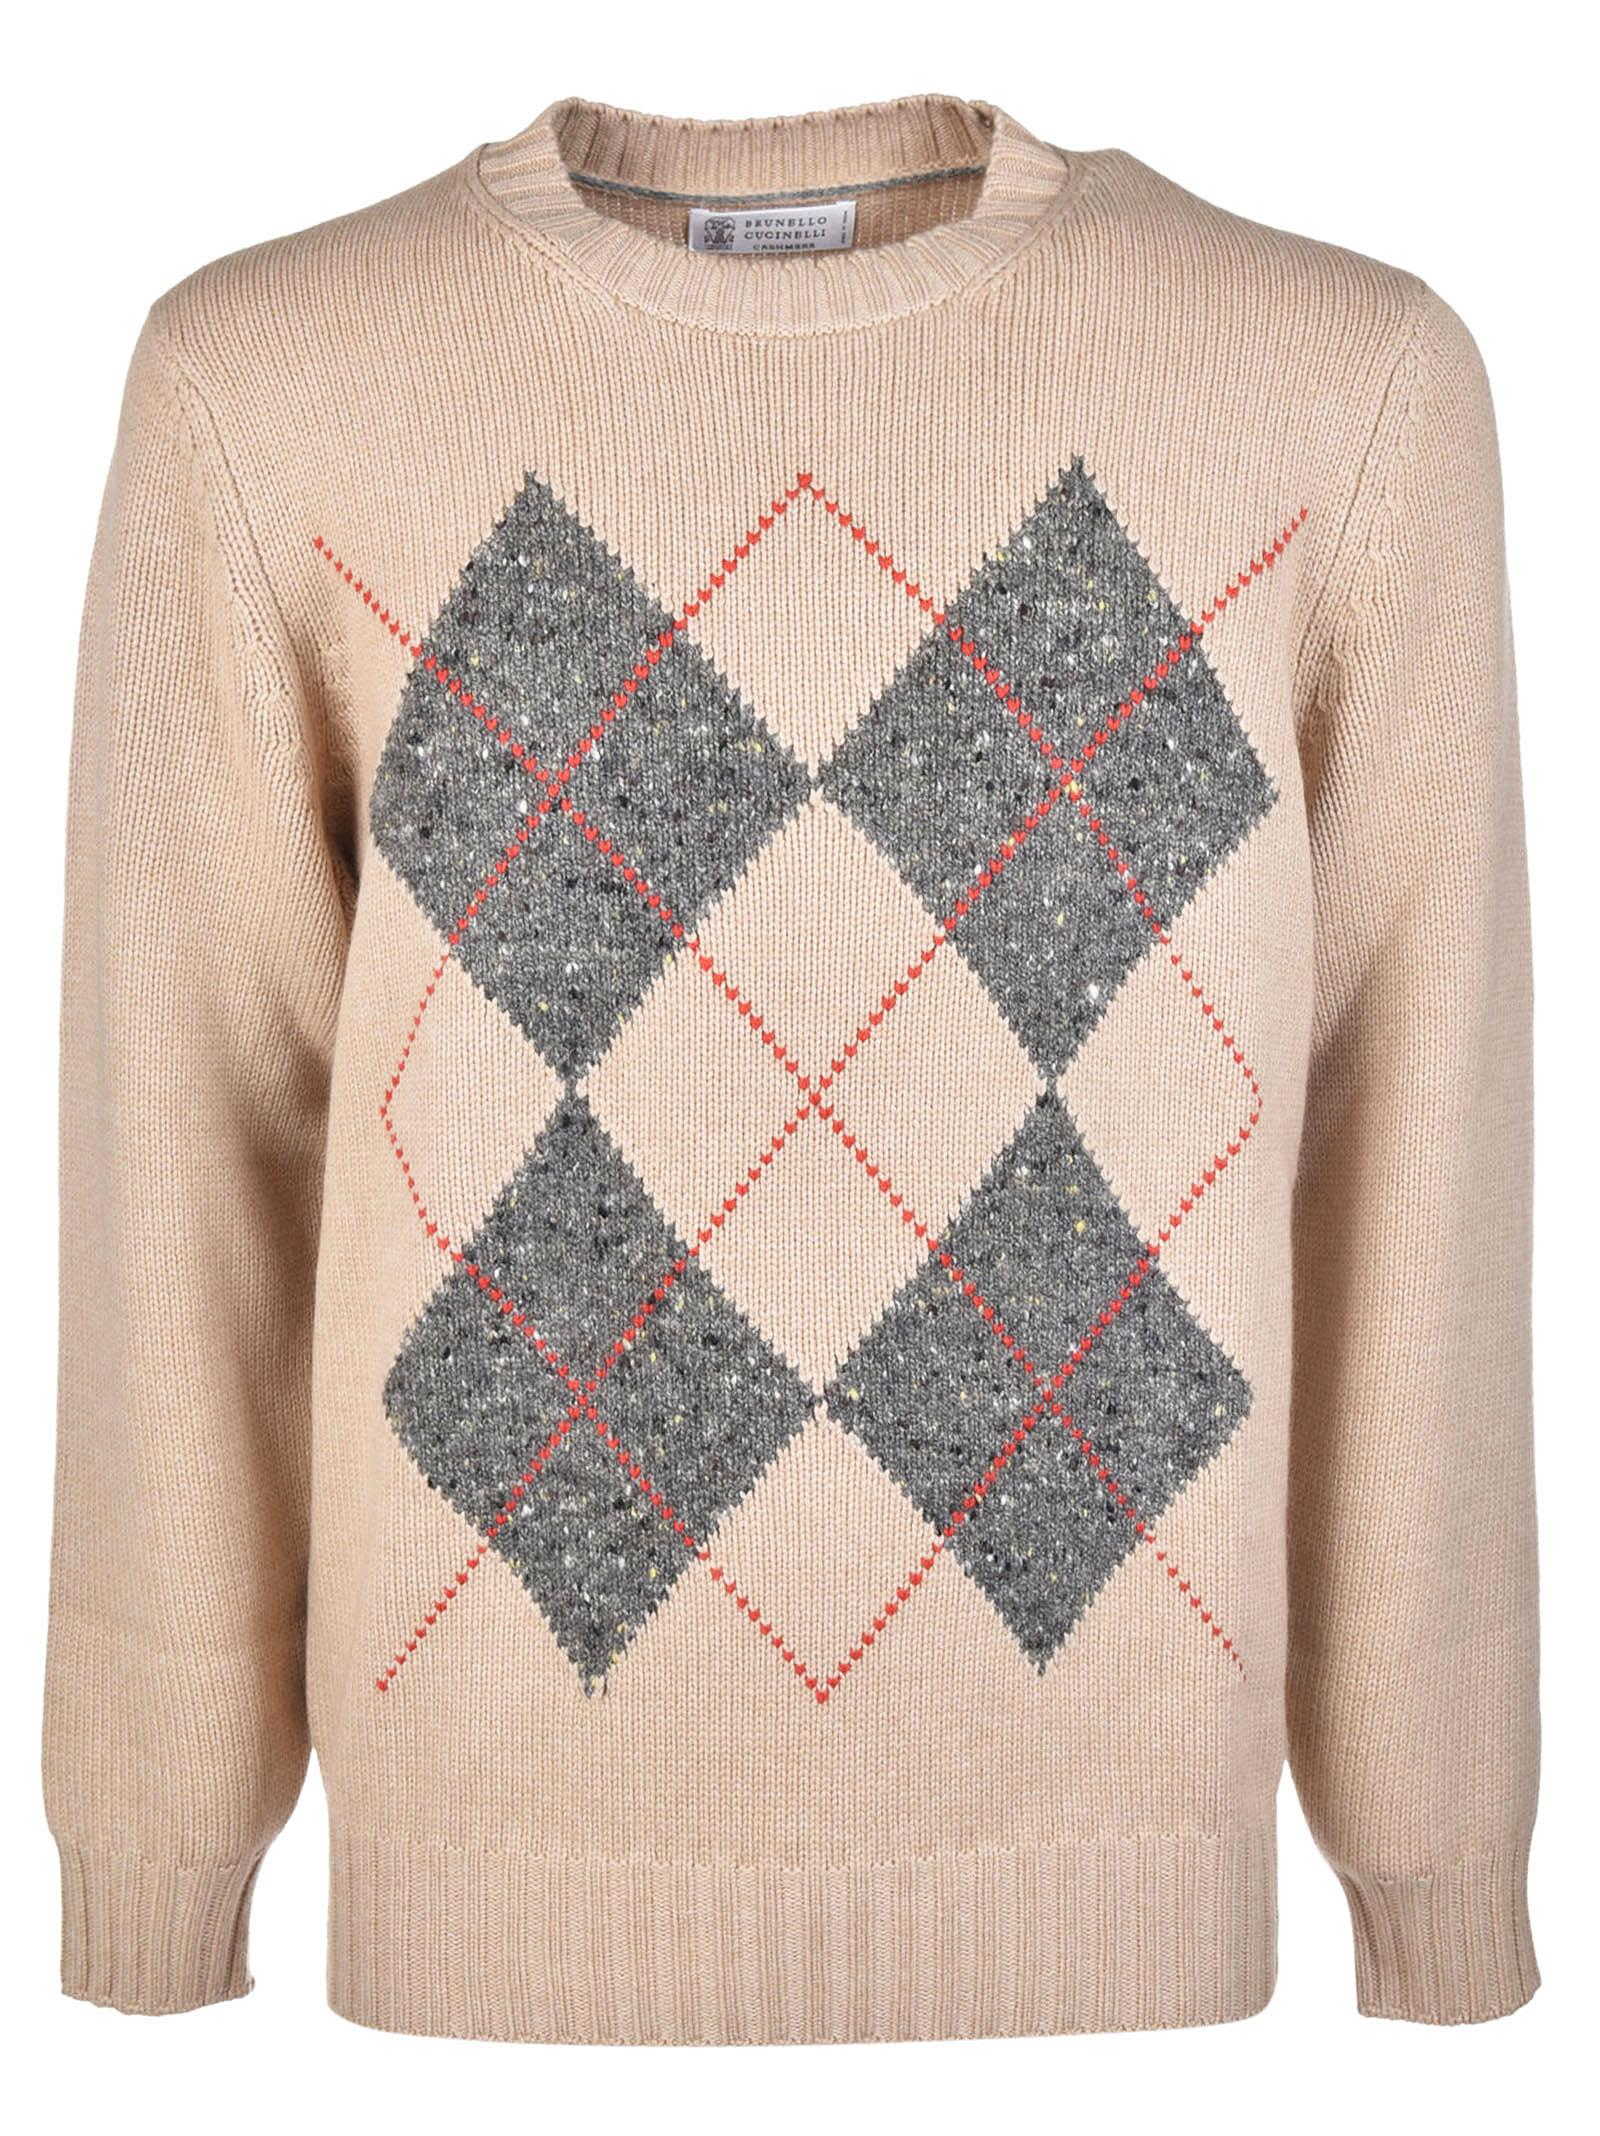 Brunello Cucinelli Patterned Sweater